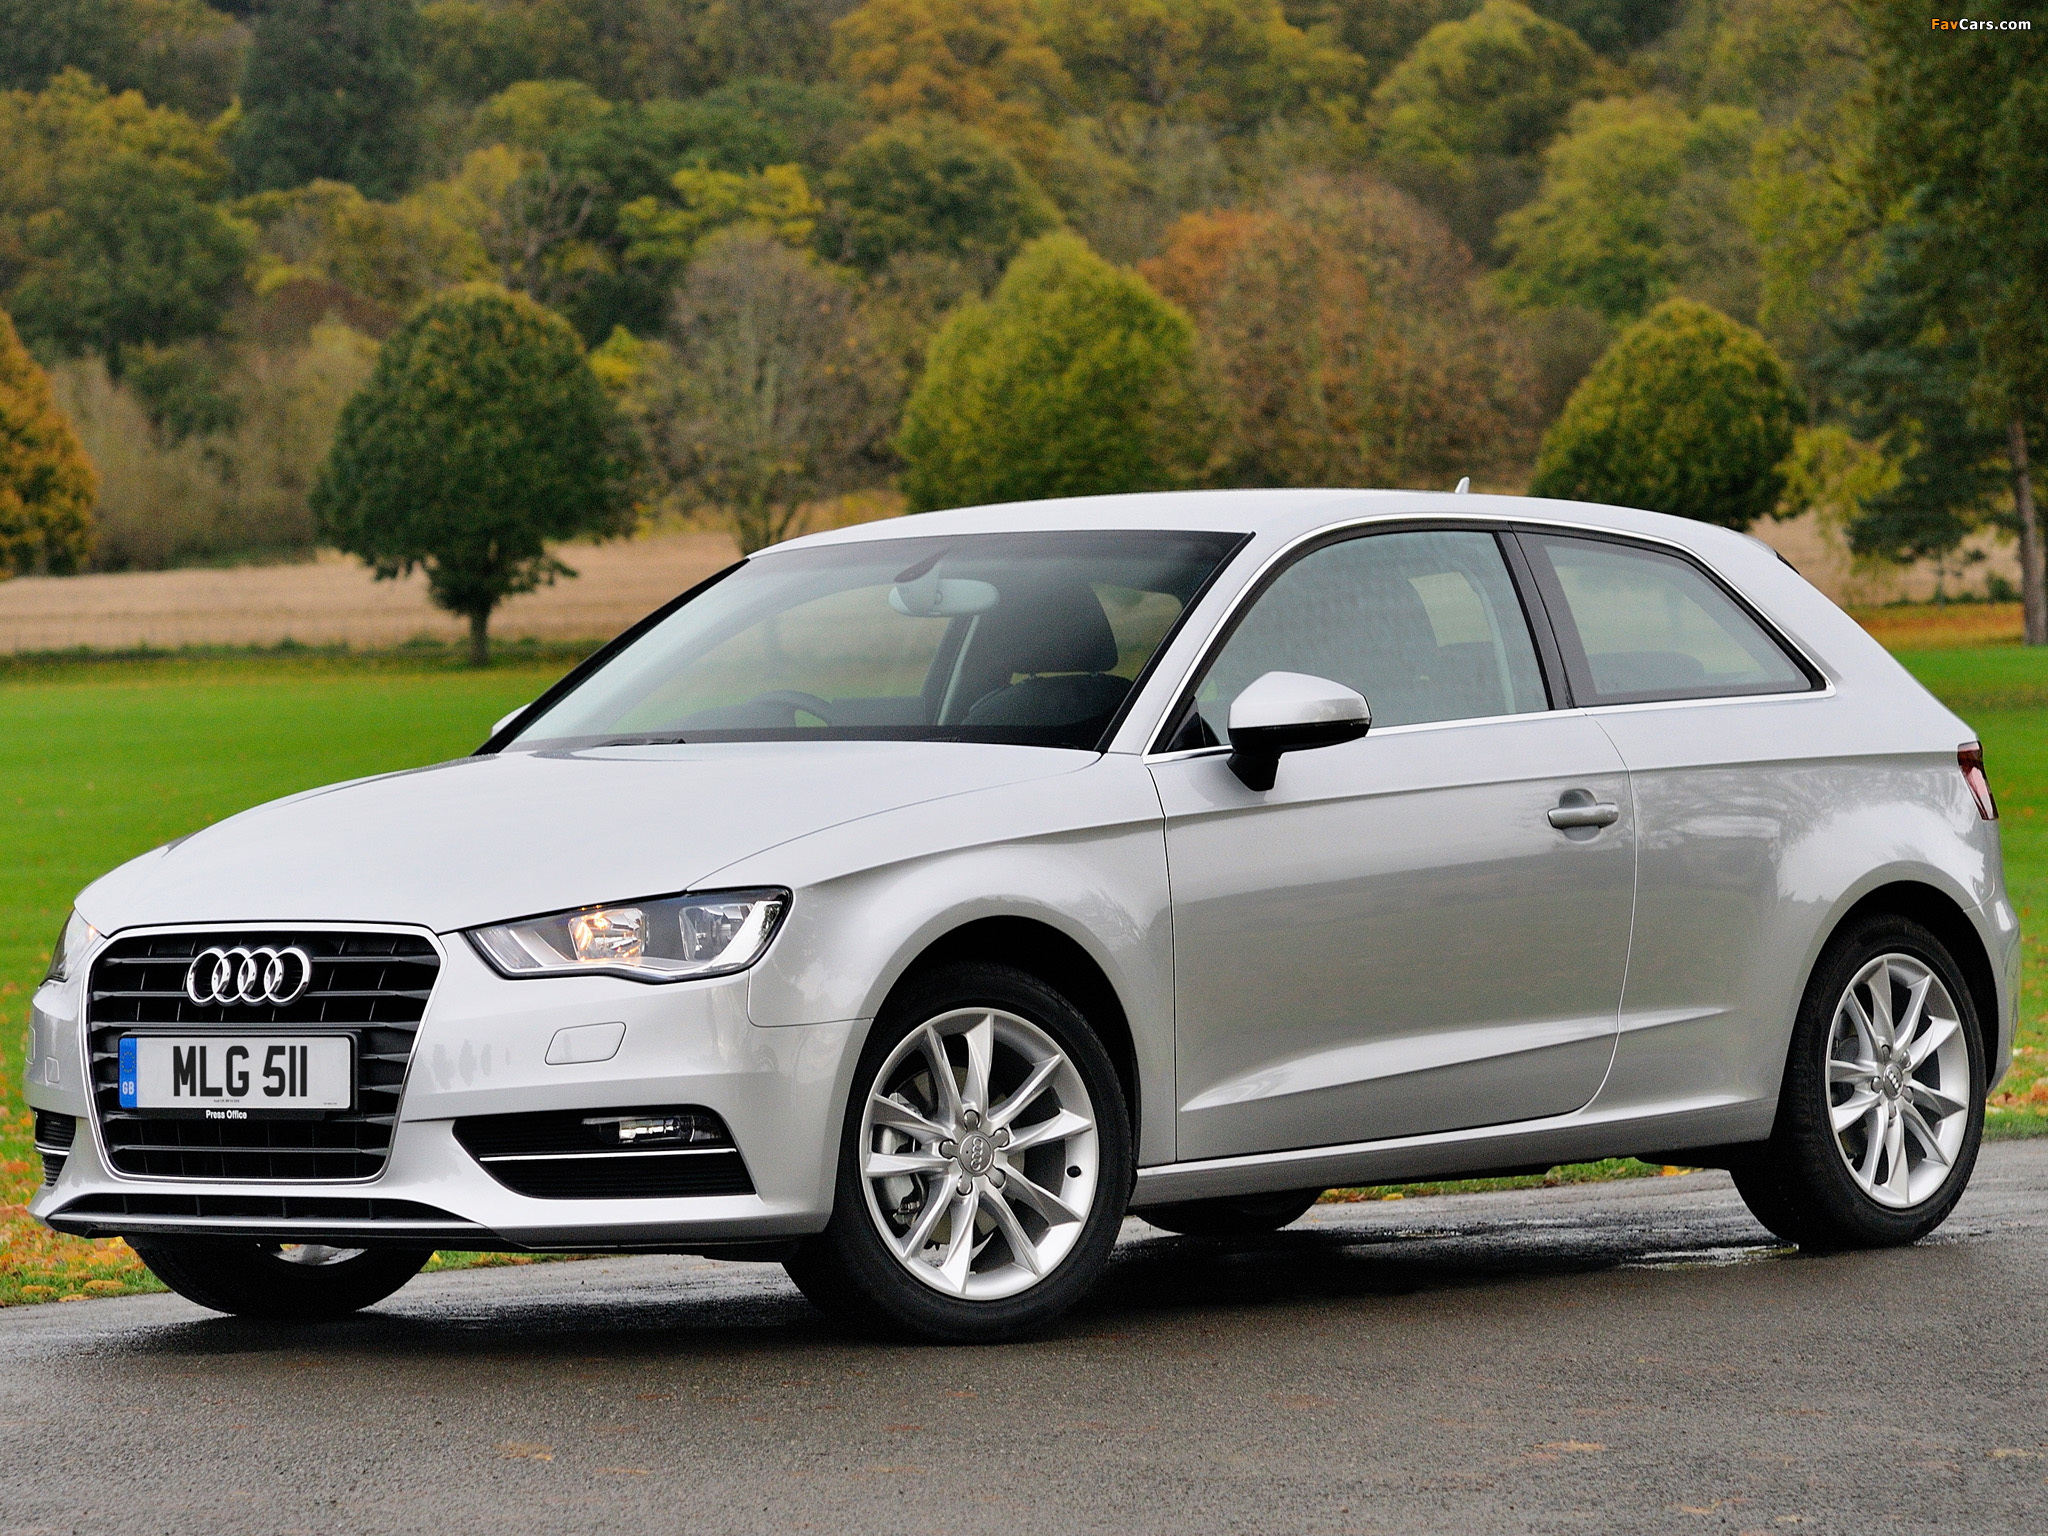 Audi A3 1 4t Uk Spec 8v 2012 Pictures 2048x1536